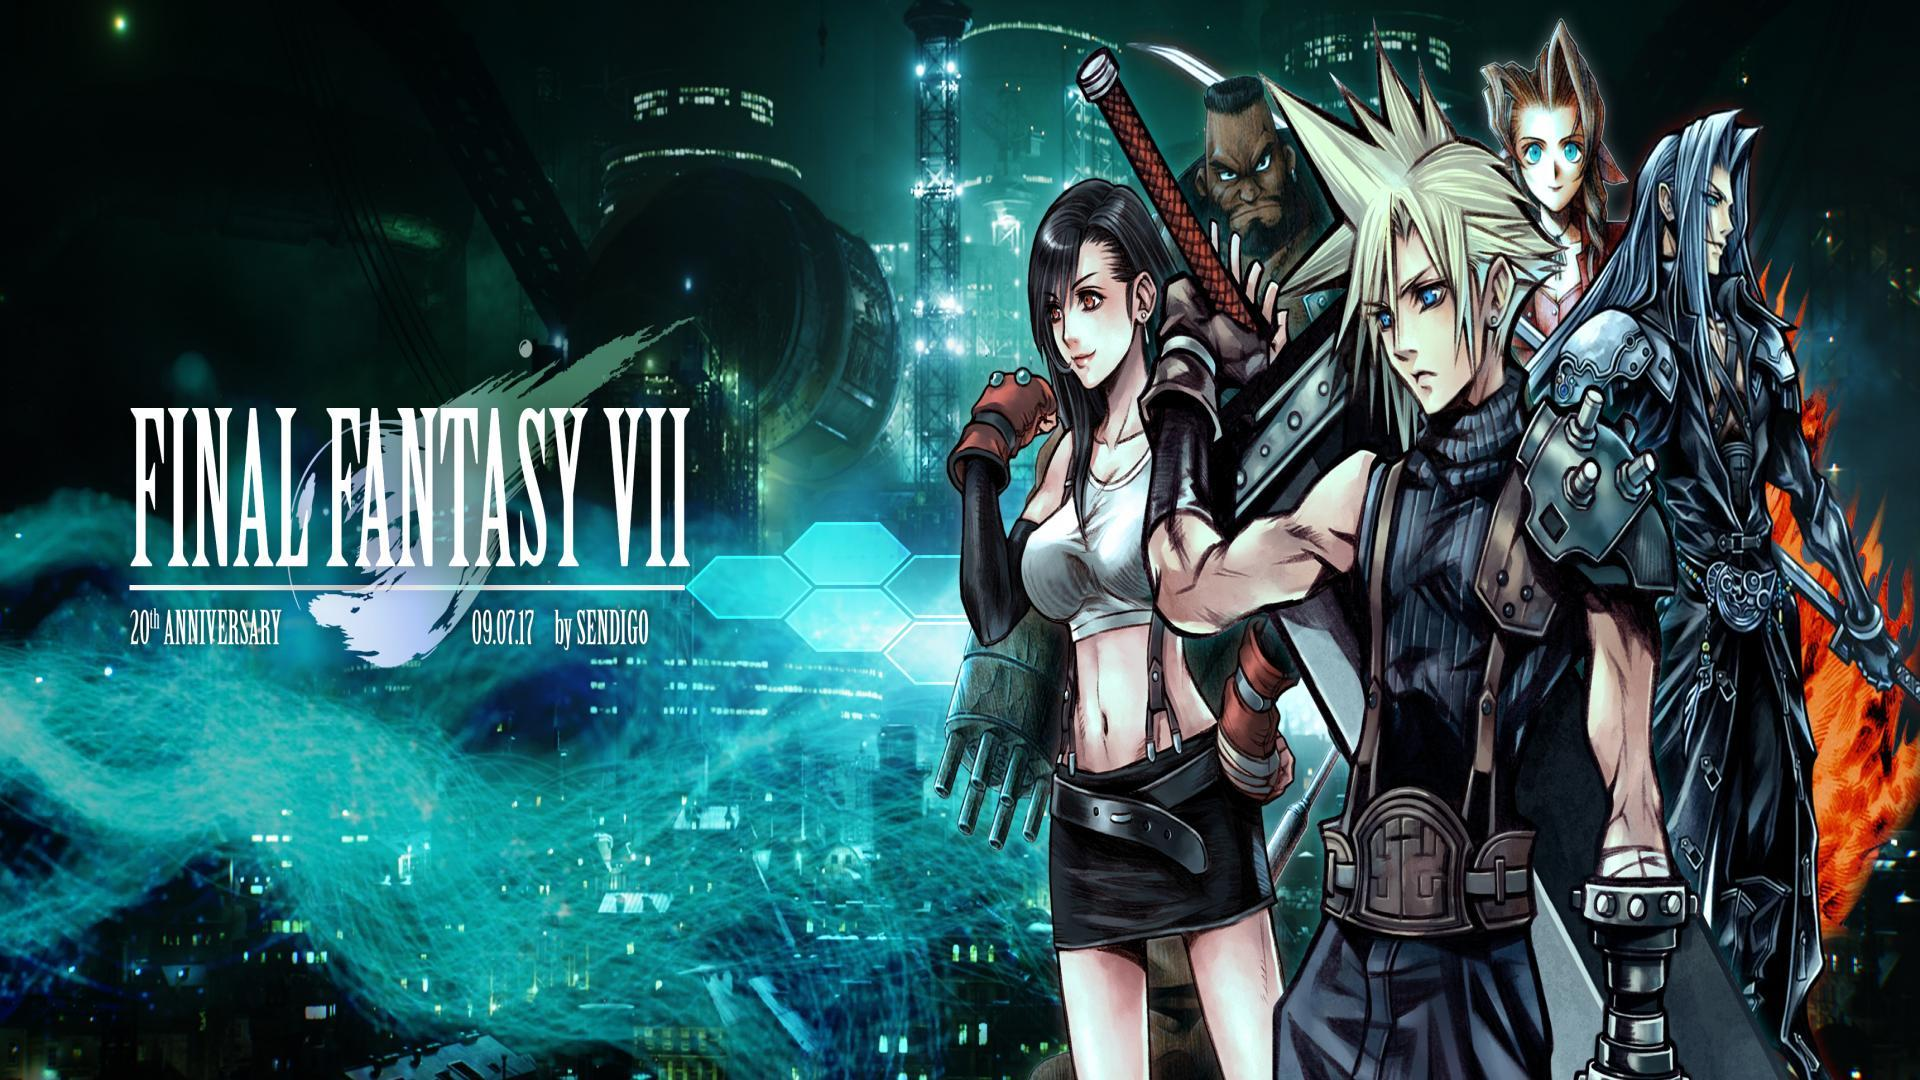 Final Fantasy Vii Wallpaper posted by Ryan Thompson